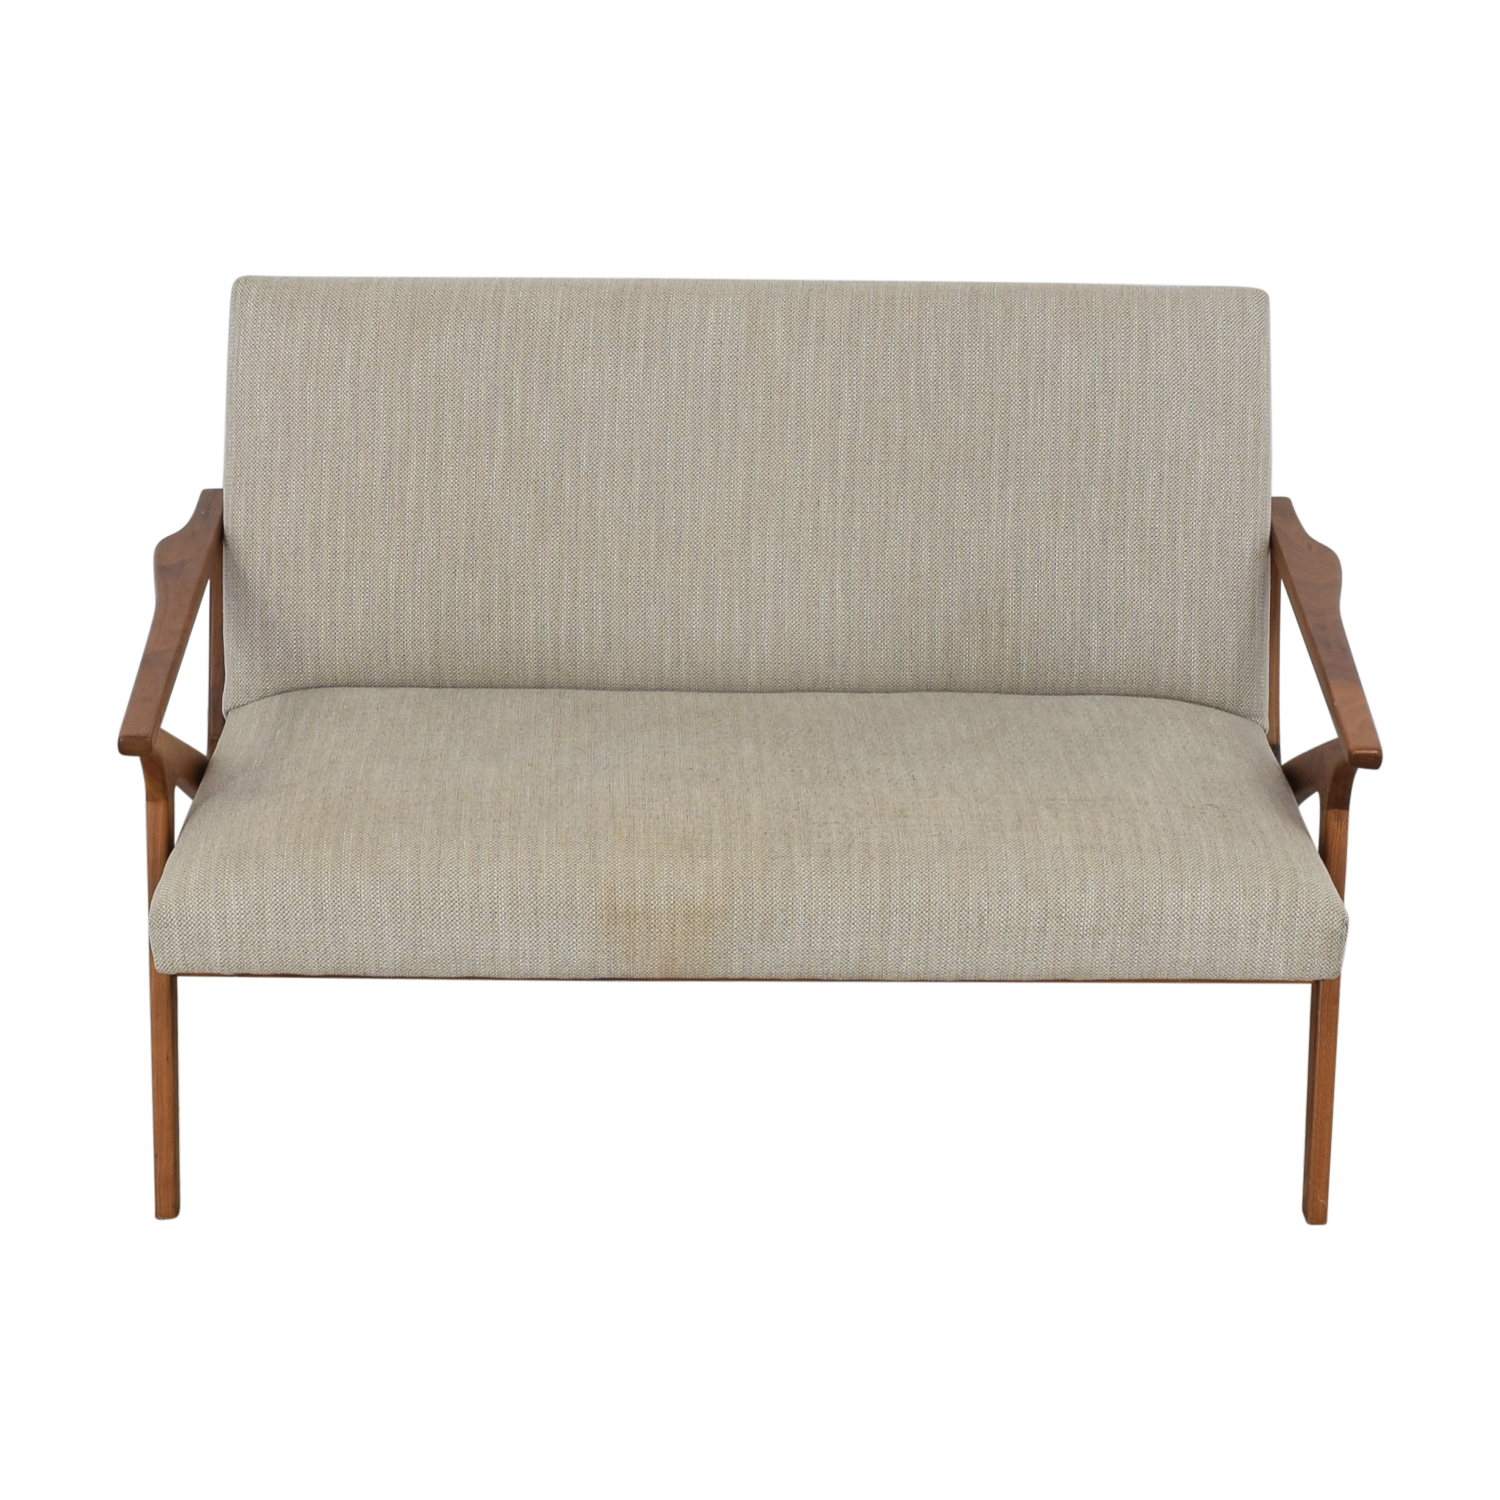 buy Crate & Barrel Cavett Frame Wood Love Seat Crate & Barrel Sofas